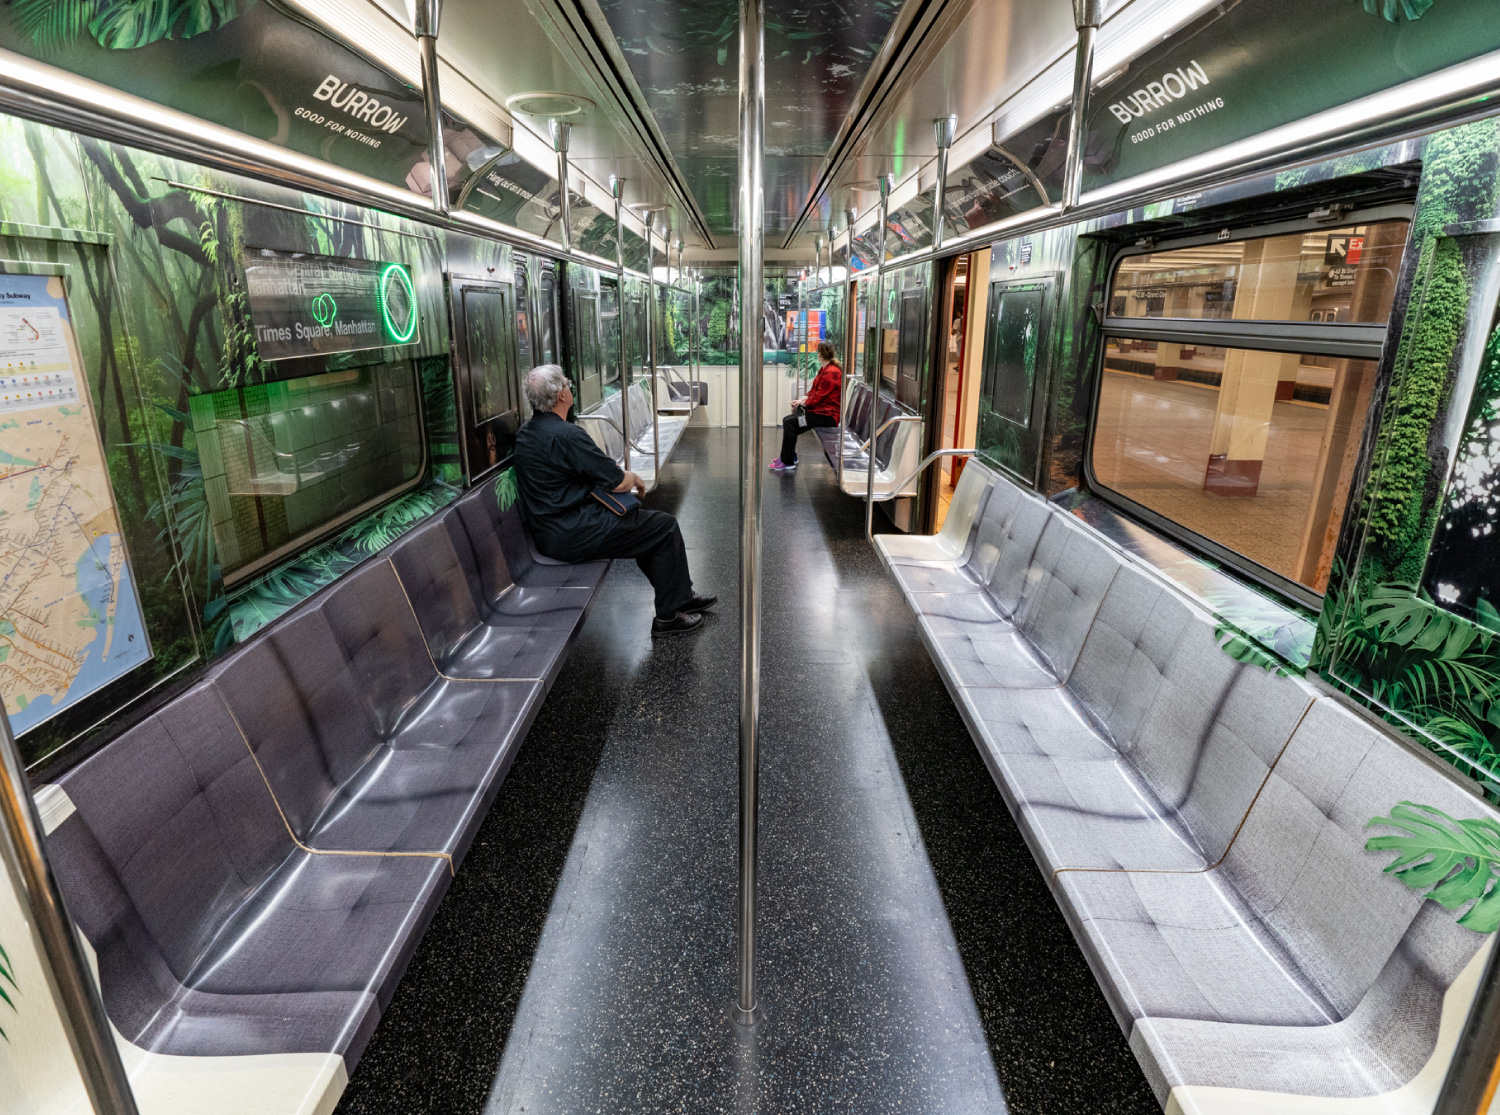 17-red-antler-burrow-good-for-nothing-campaign-subway-takeover-interior.jpg